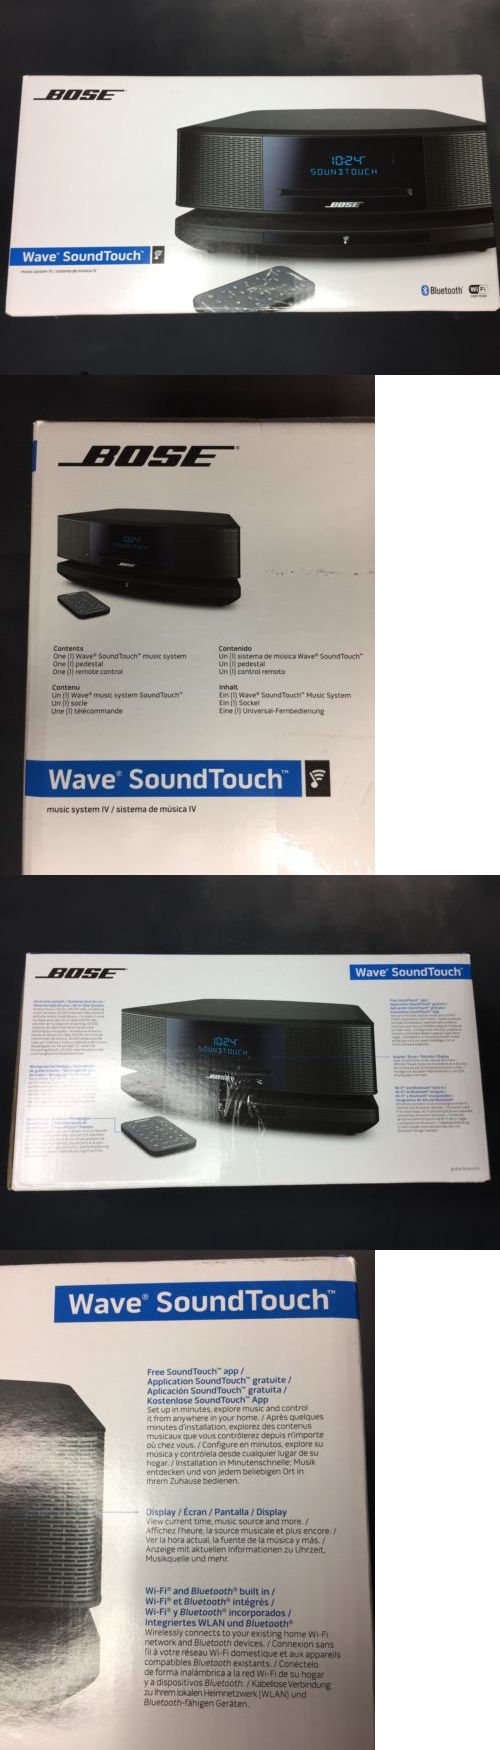 Compact and Shelf Stereos: Bose Wave Soundtouch Music System Iv Remote, Cd Player And Radio- Espresso Black BUY IT NOW ONLY: $550.0